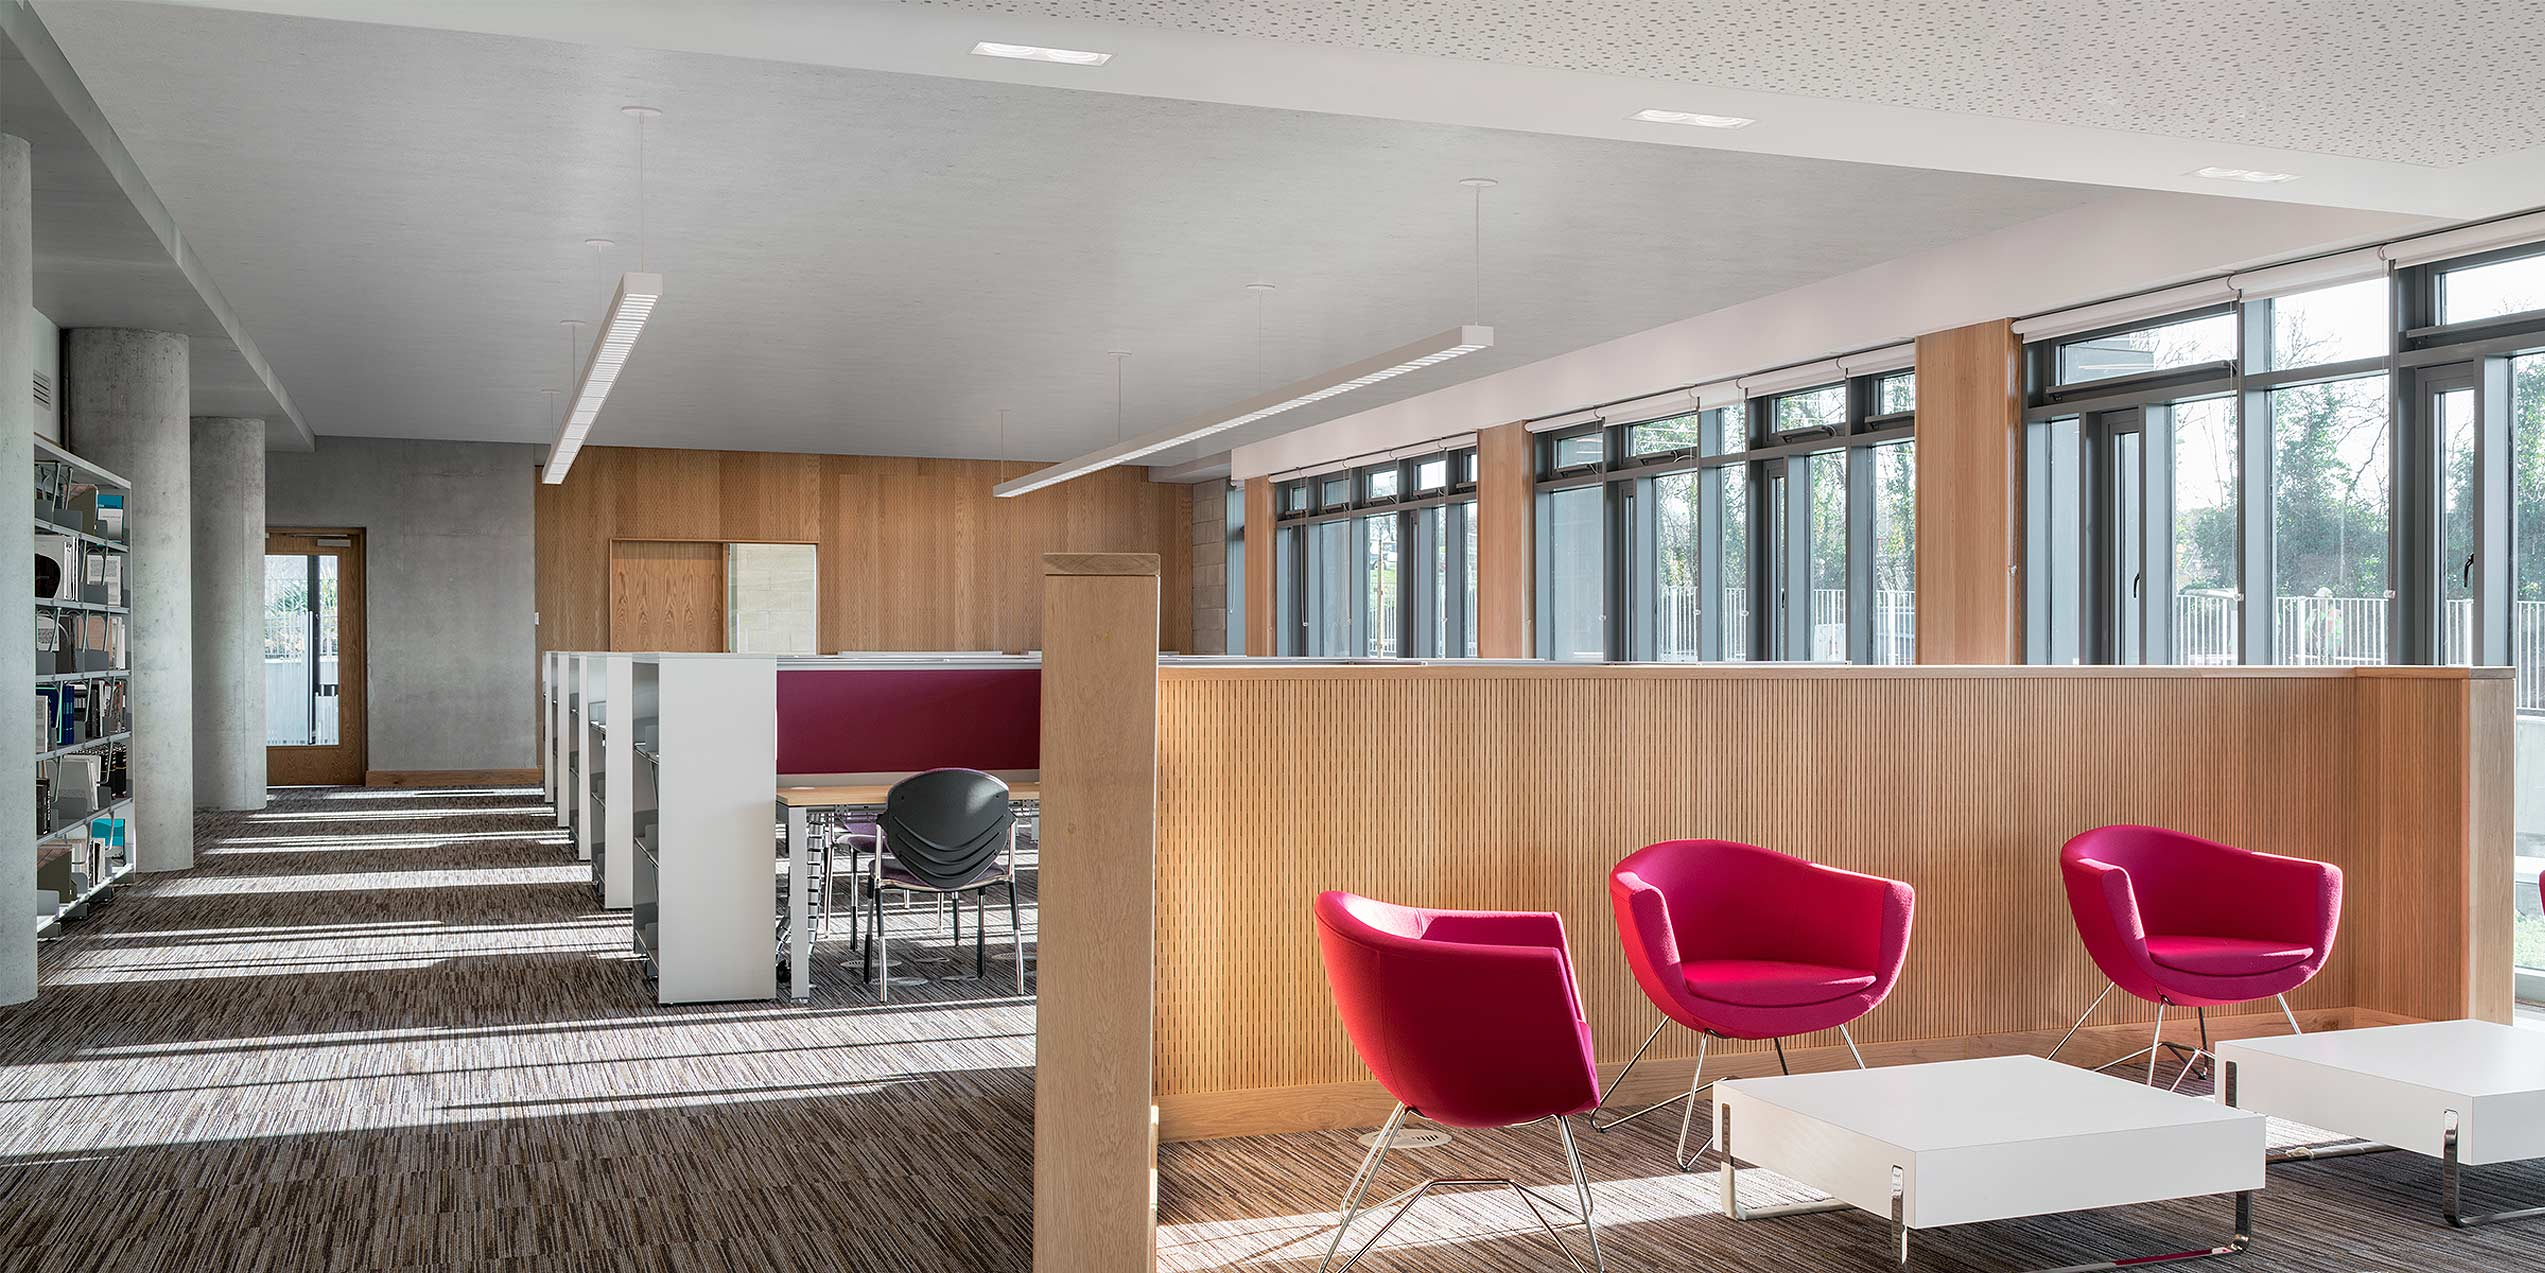 workspace area in a library that has aperture lighting fixtures. pink chairs seated around a table